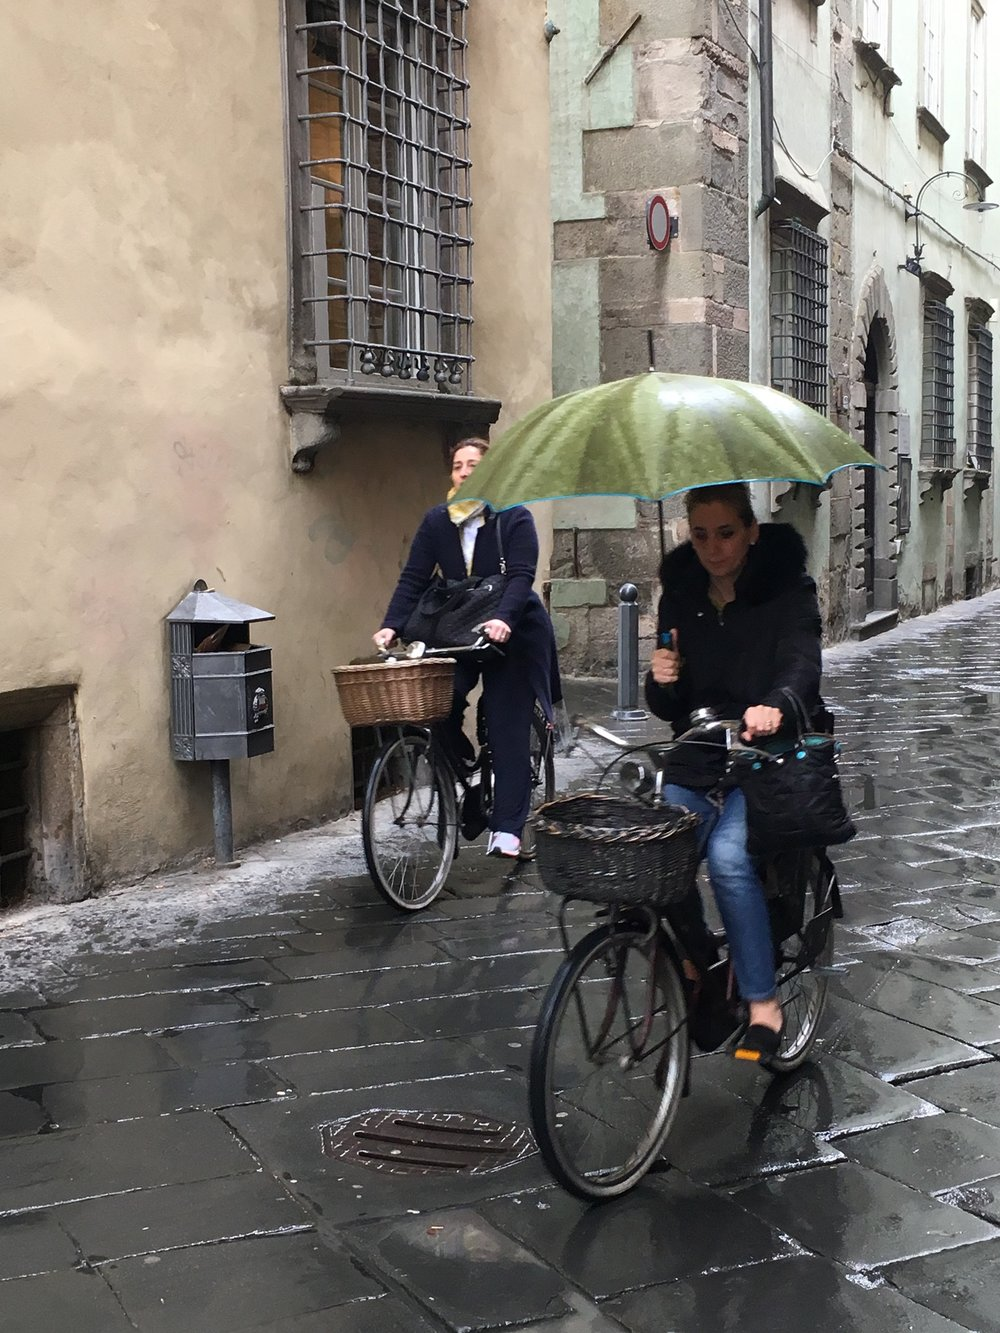 Bicycles, a common form of transportation, don't stop for the rain.